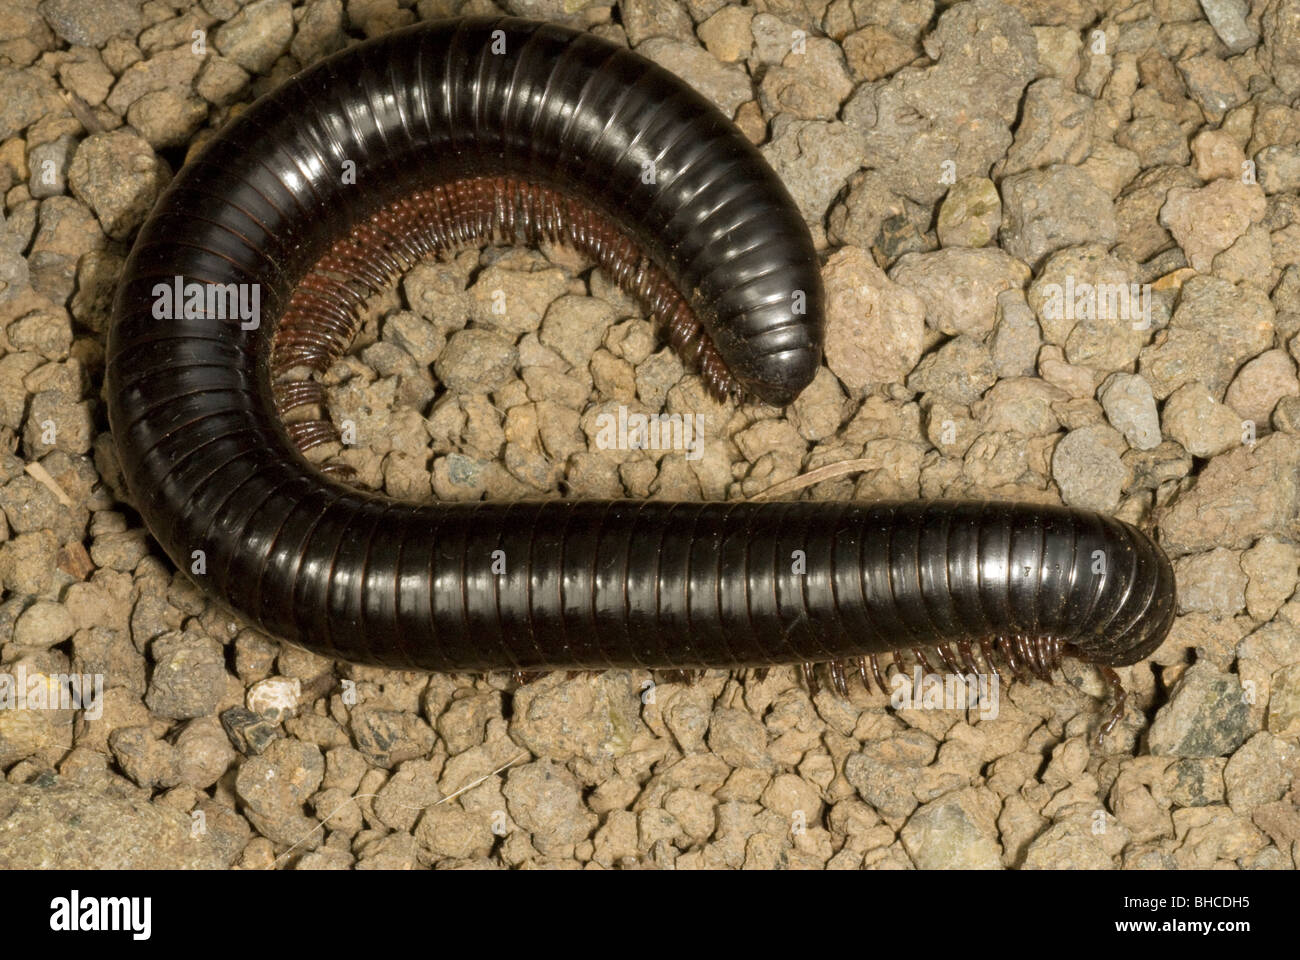 African giant millipede (Archispirostreptus gigas) - Stock Image